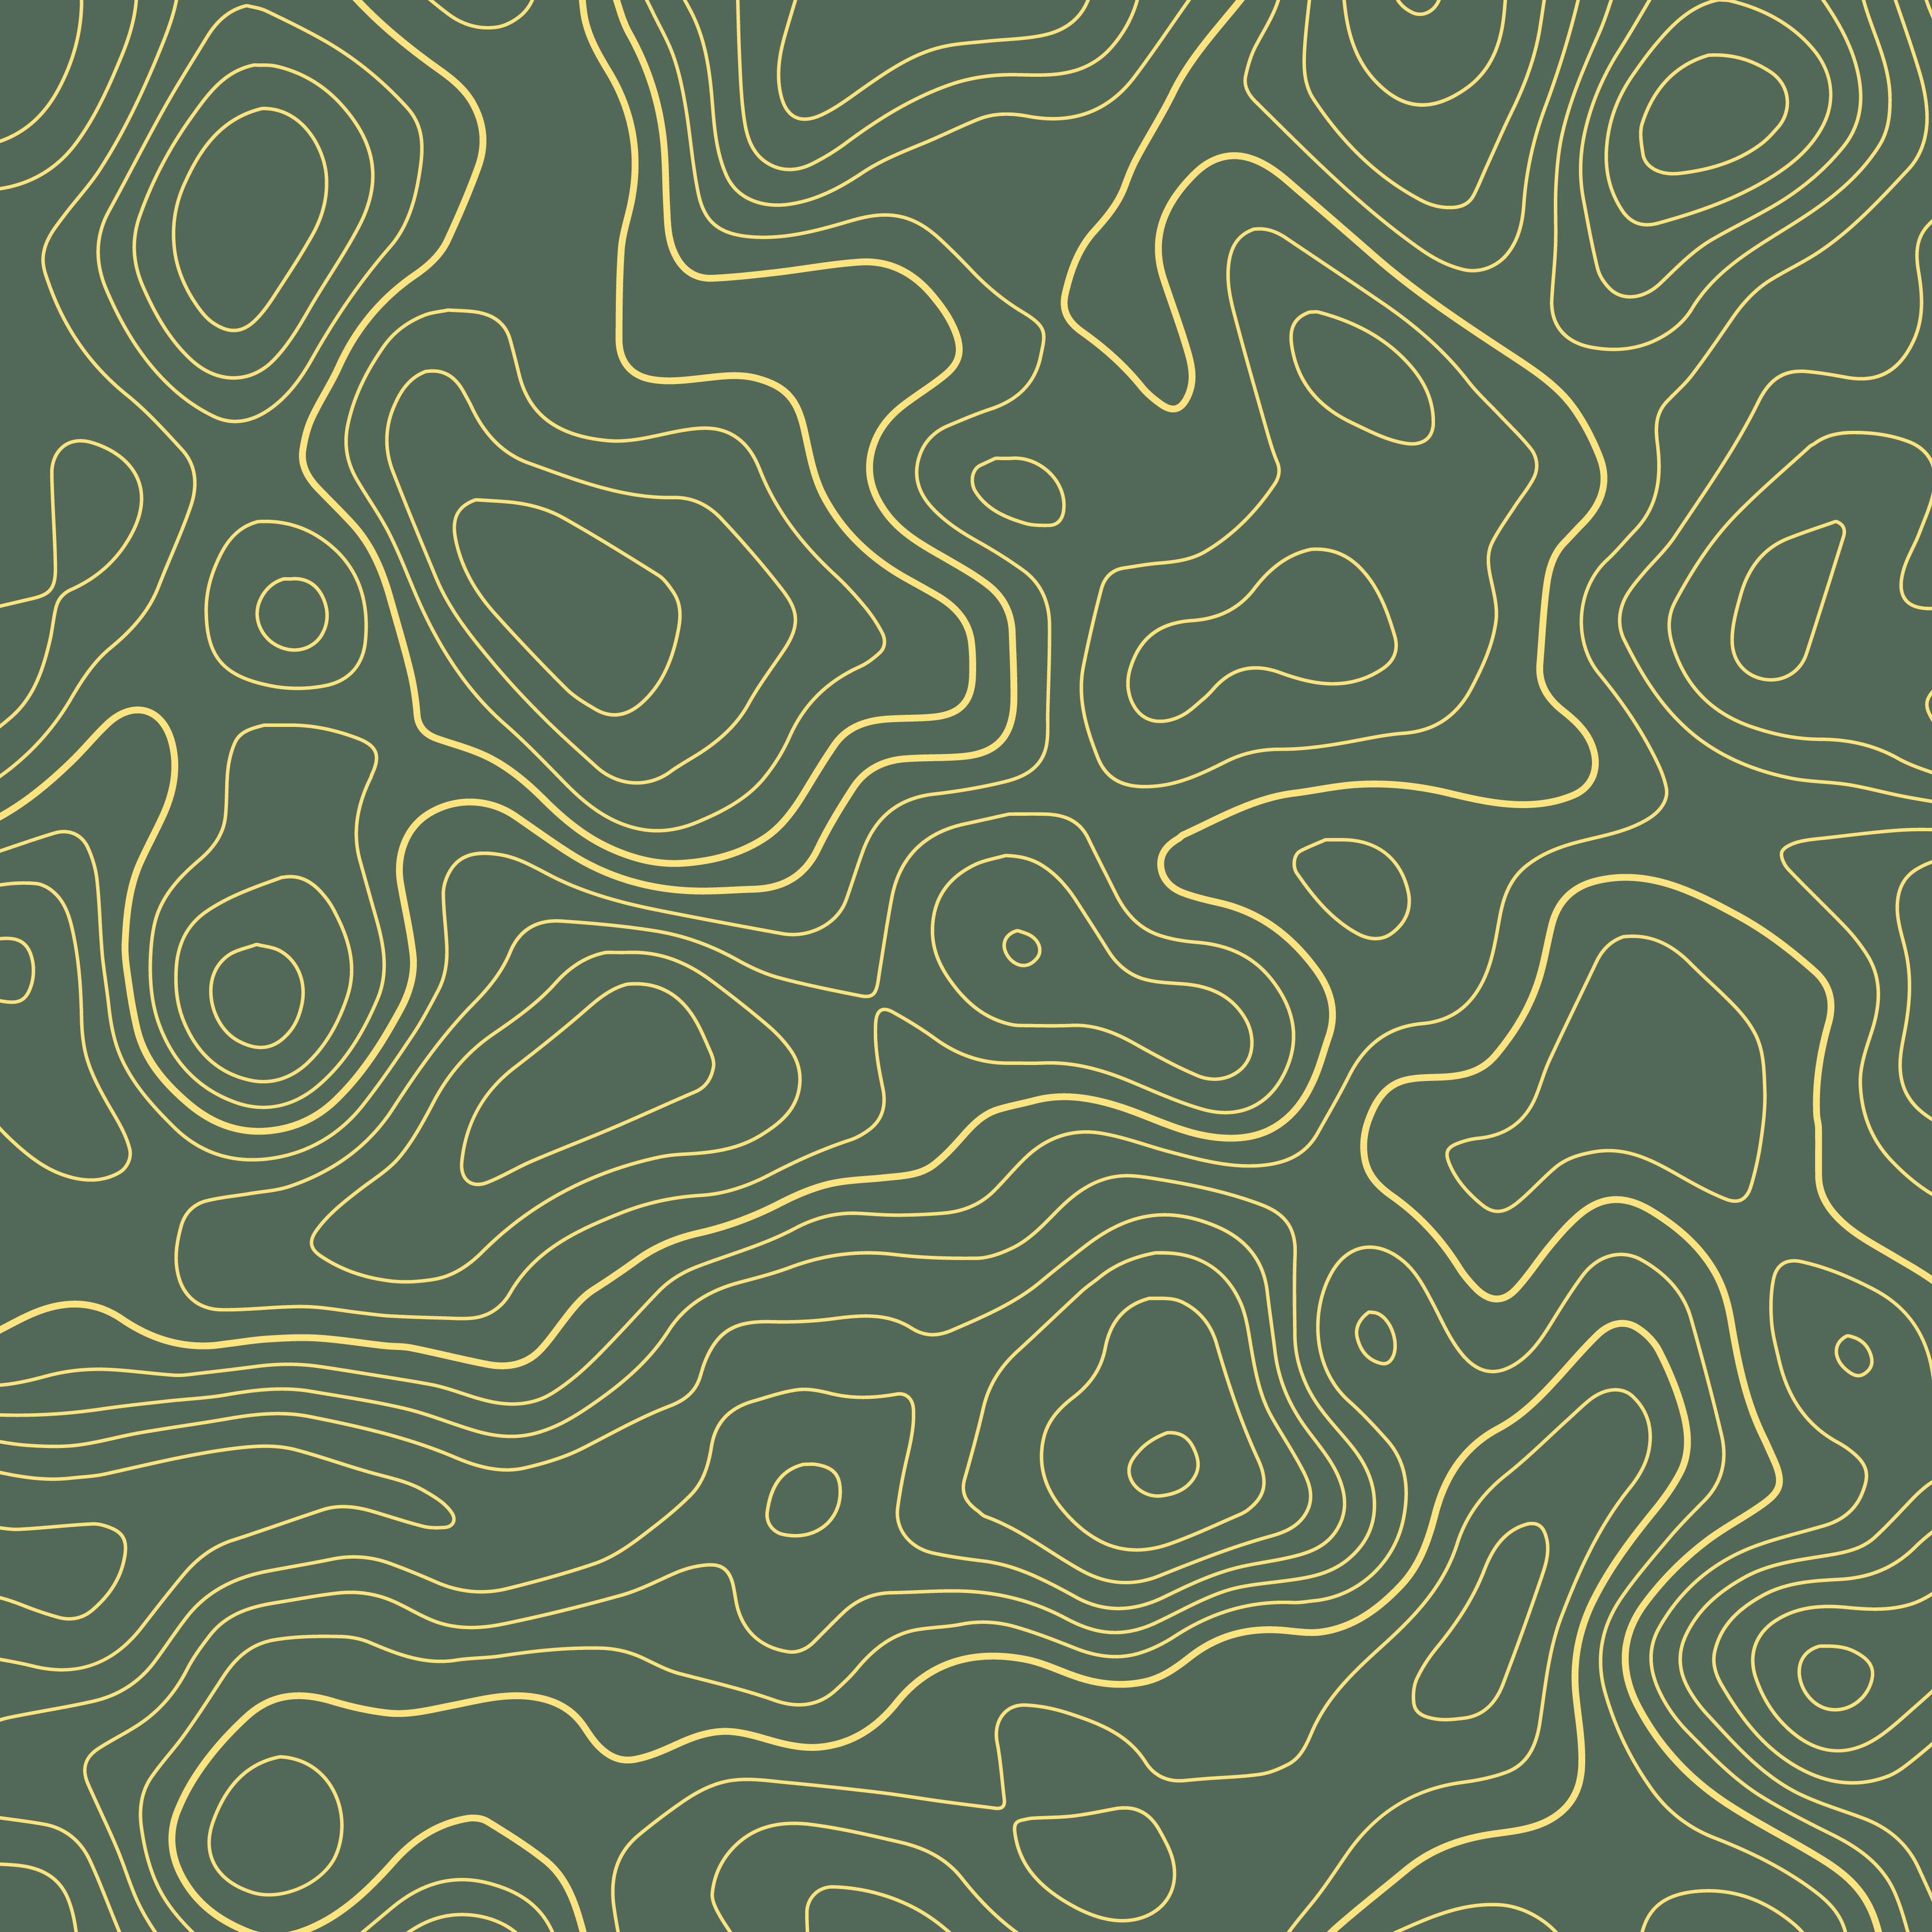 Topographic Map Vector Free.Line Topographic Map Contour Elevation Background Download Free